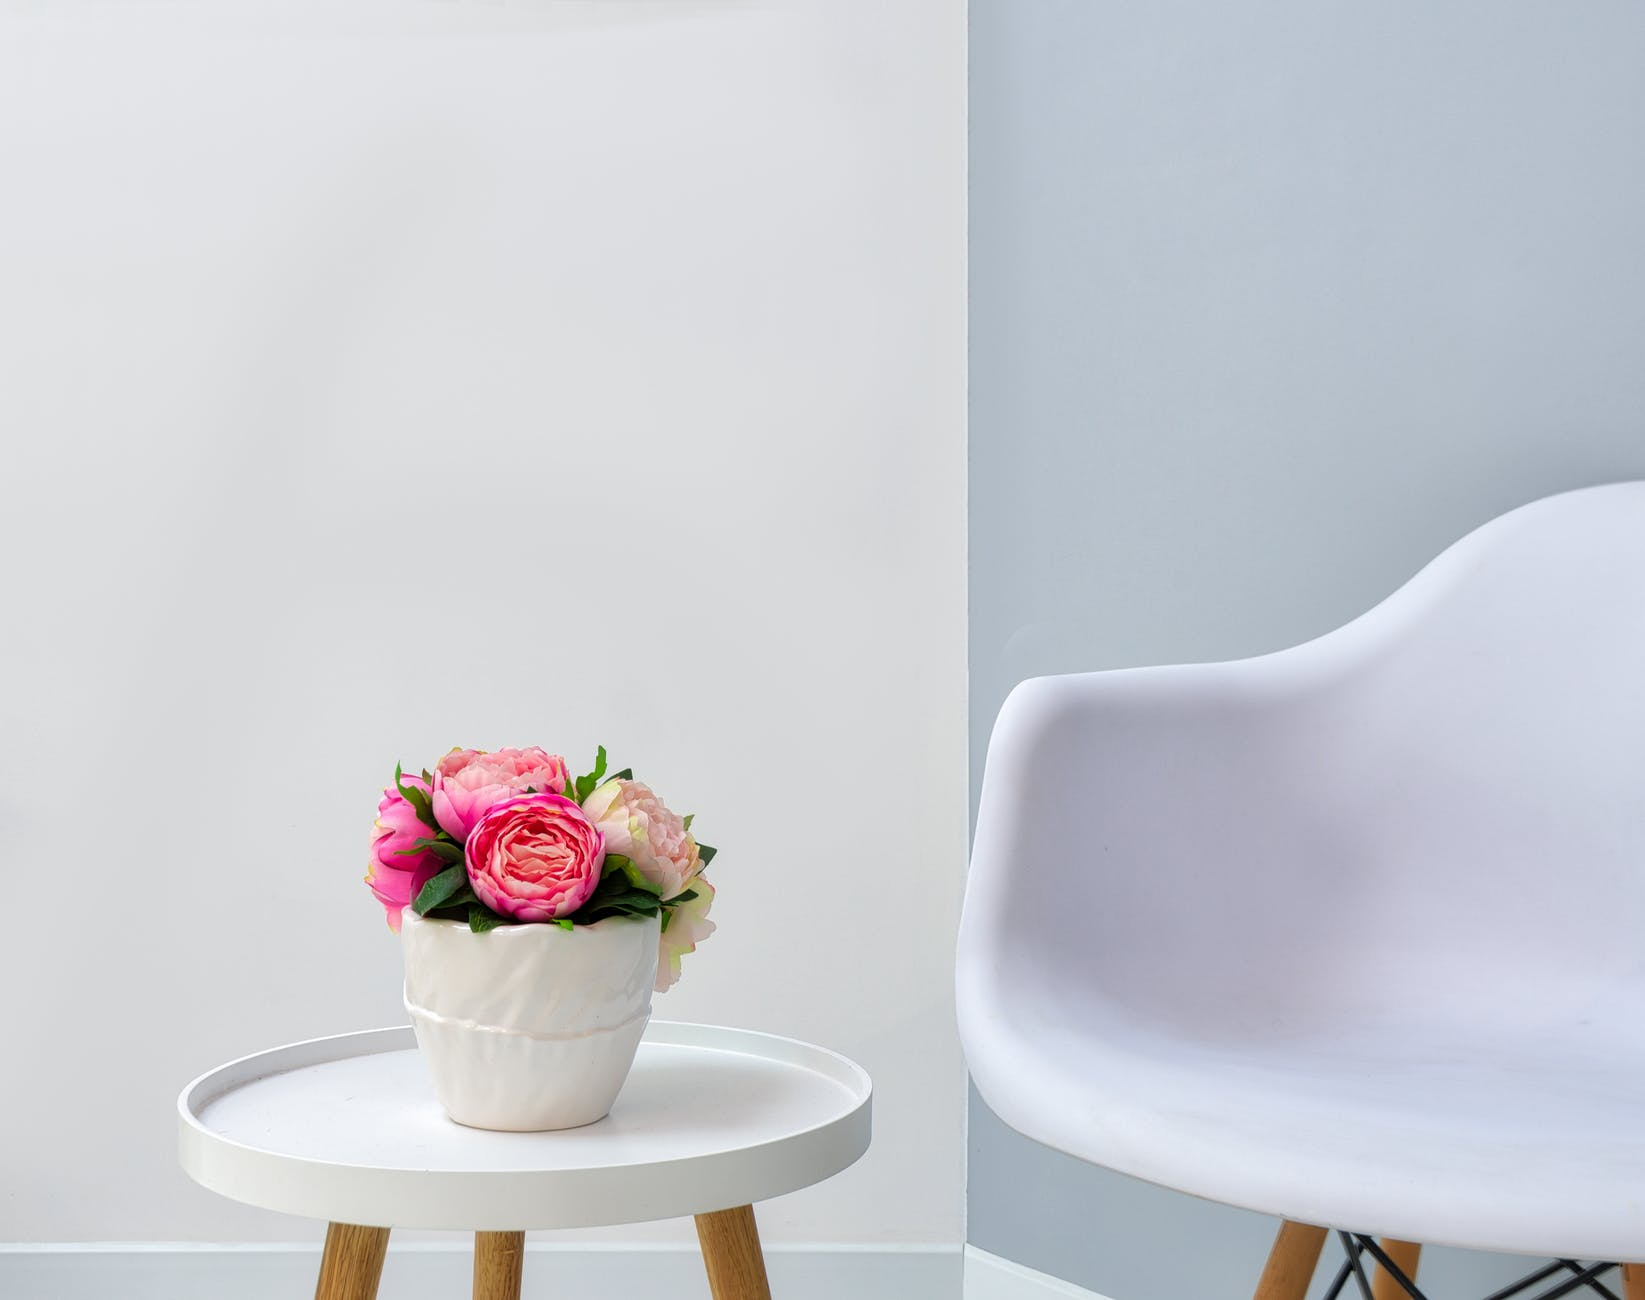 chair near table with vase of flowers